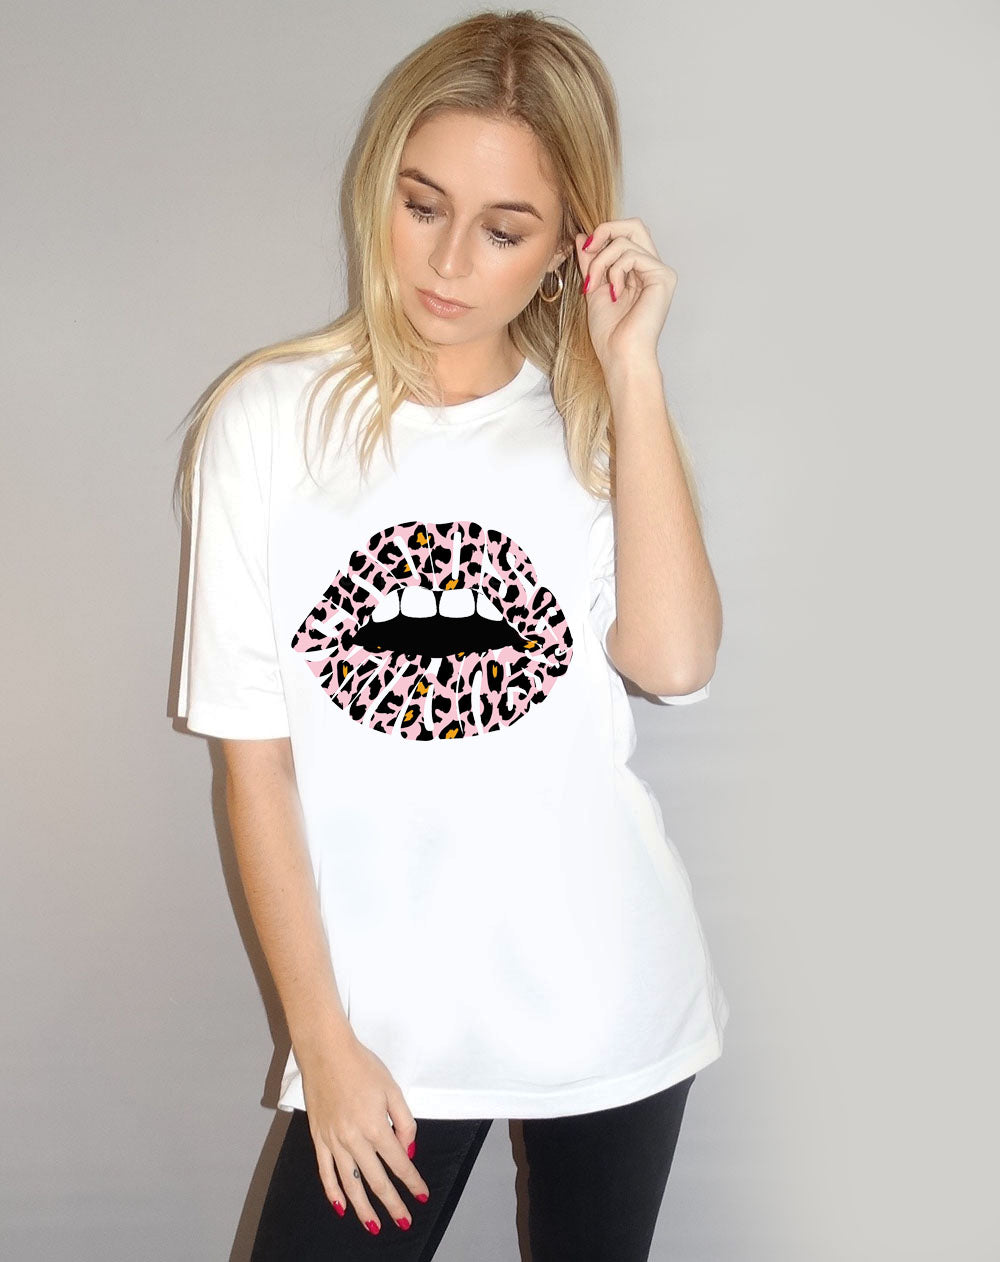 White Tshirt with Choose Kindness Pink Leopard Lips